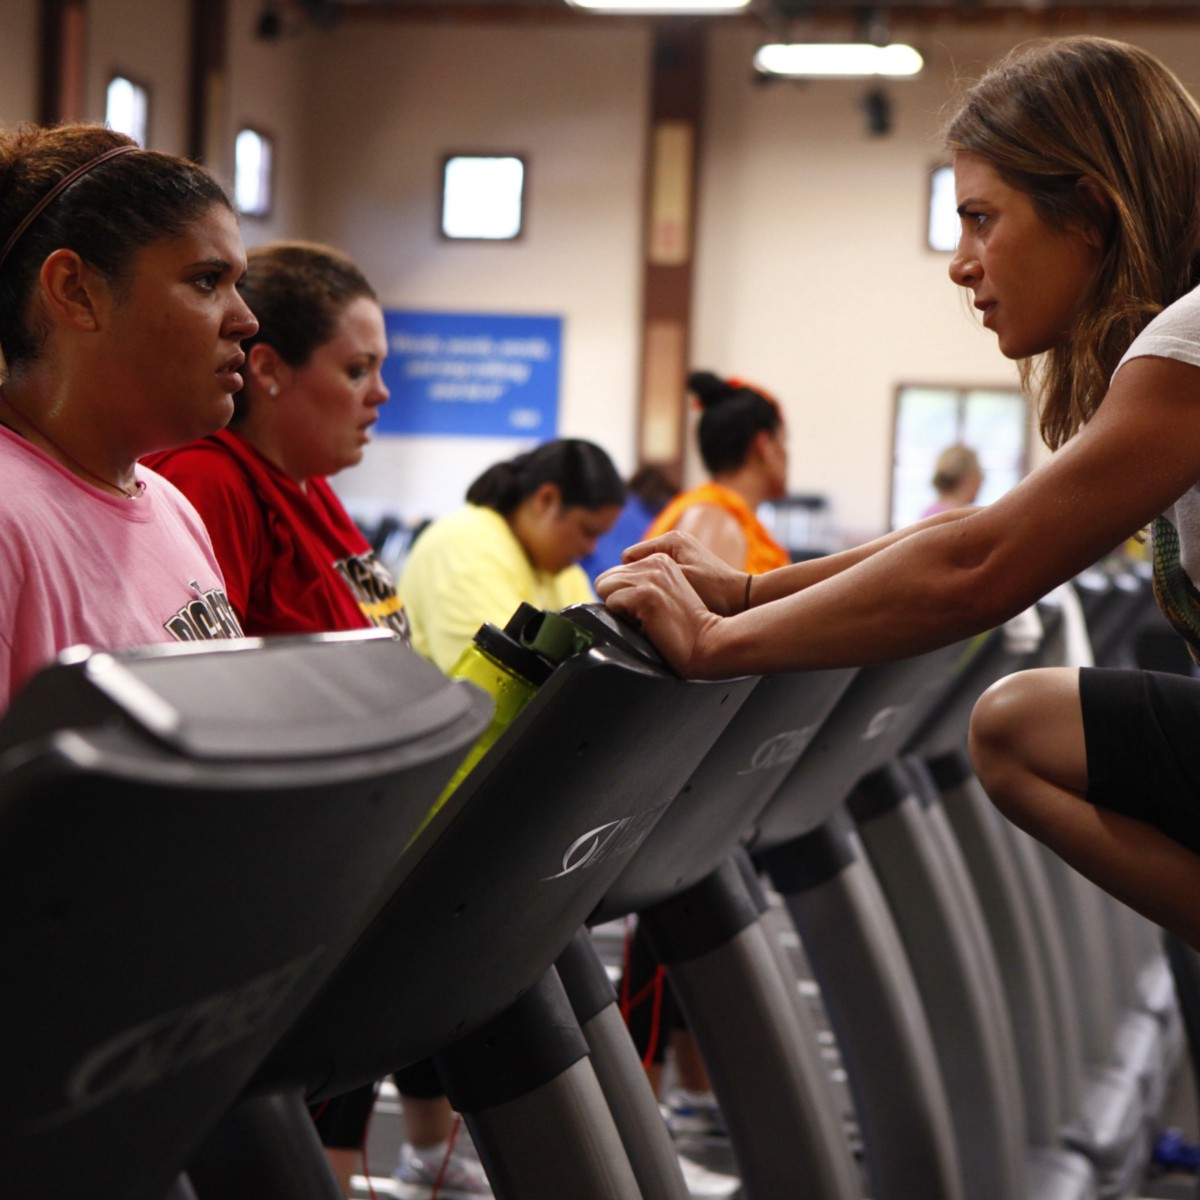 'The Biggest Loser' Remains an Abomination